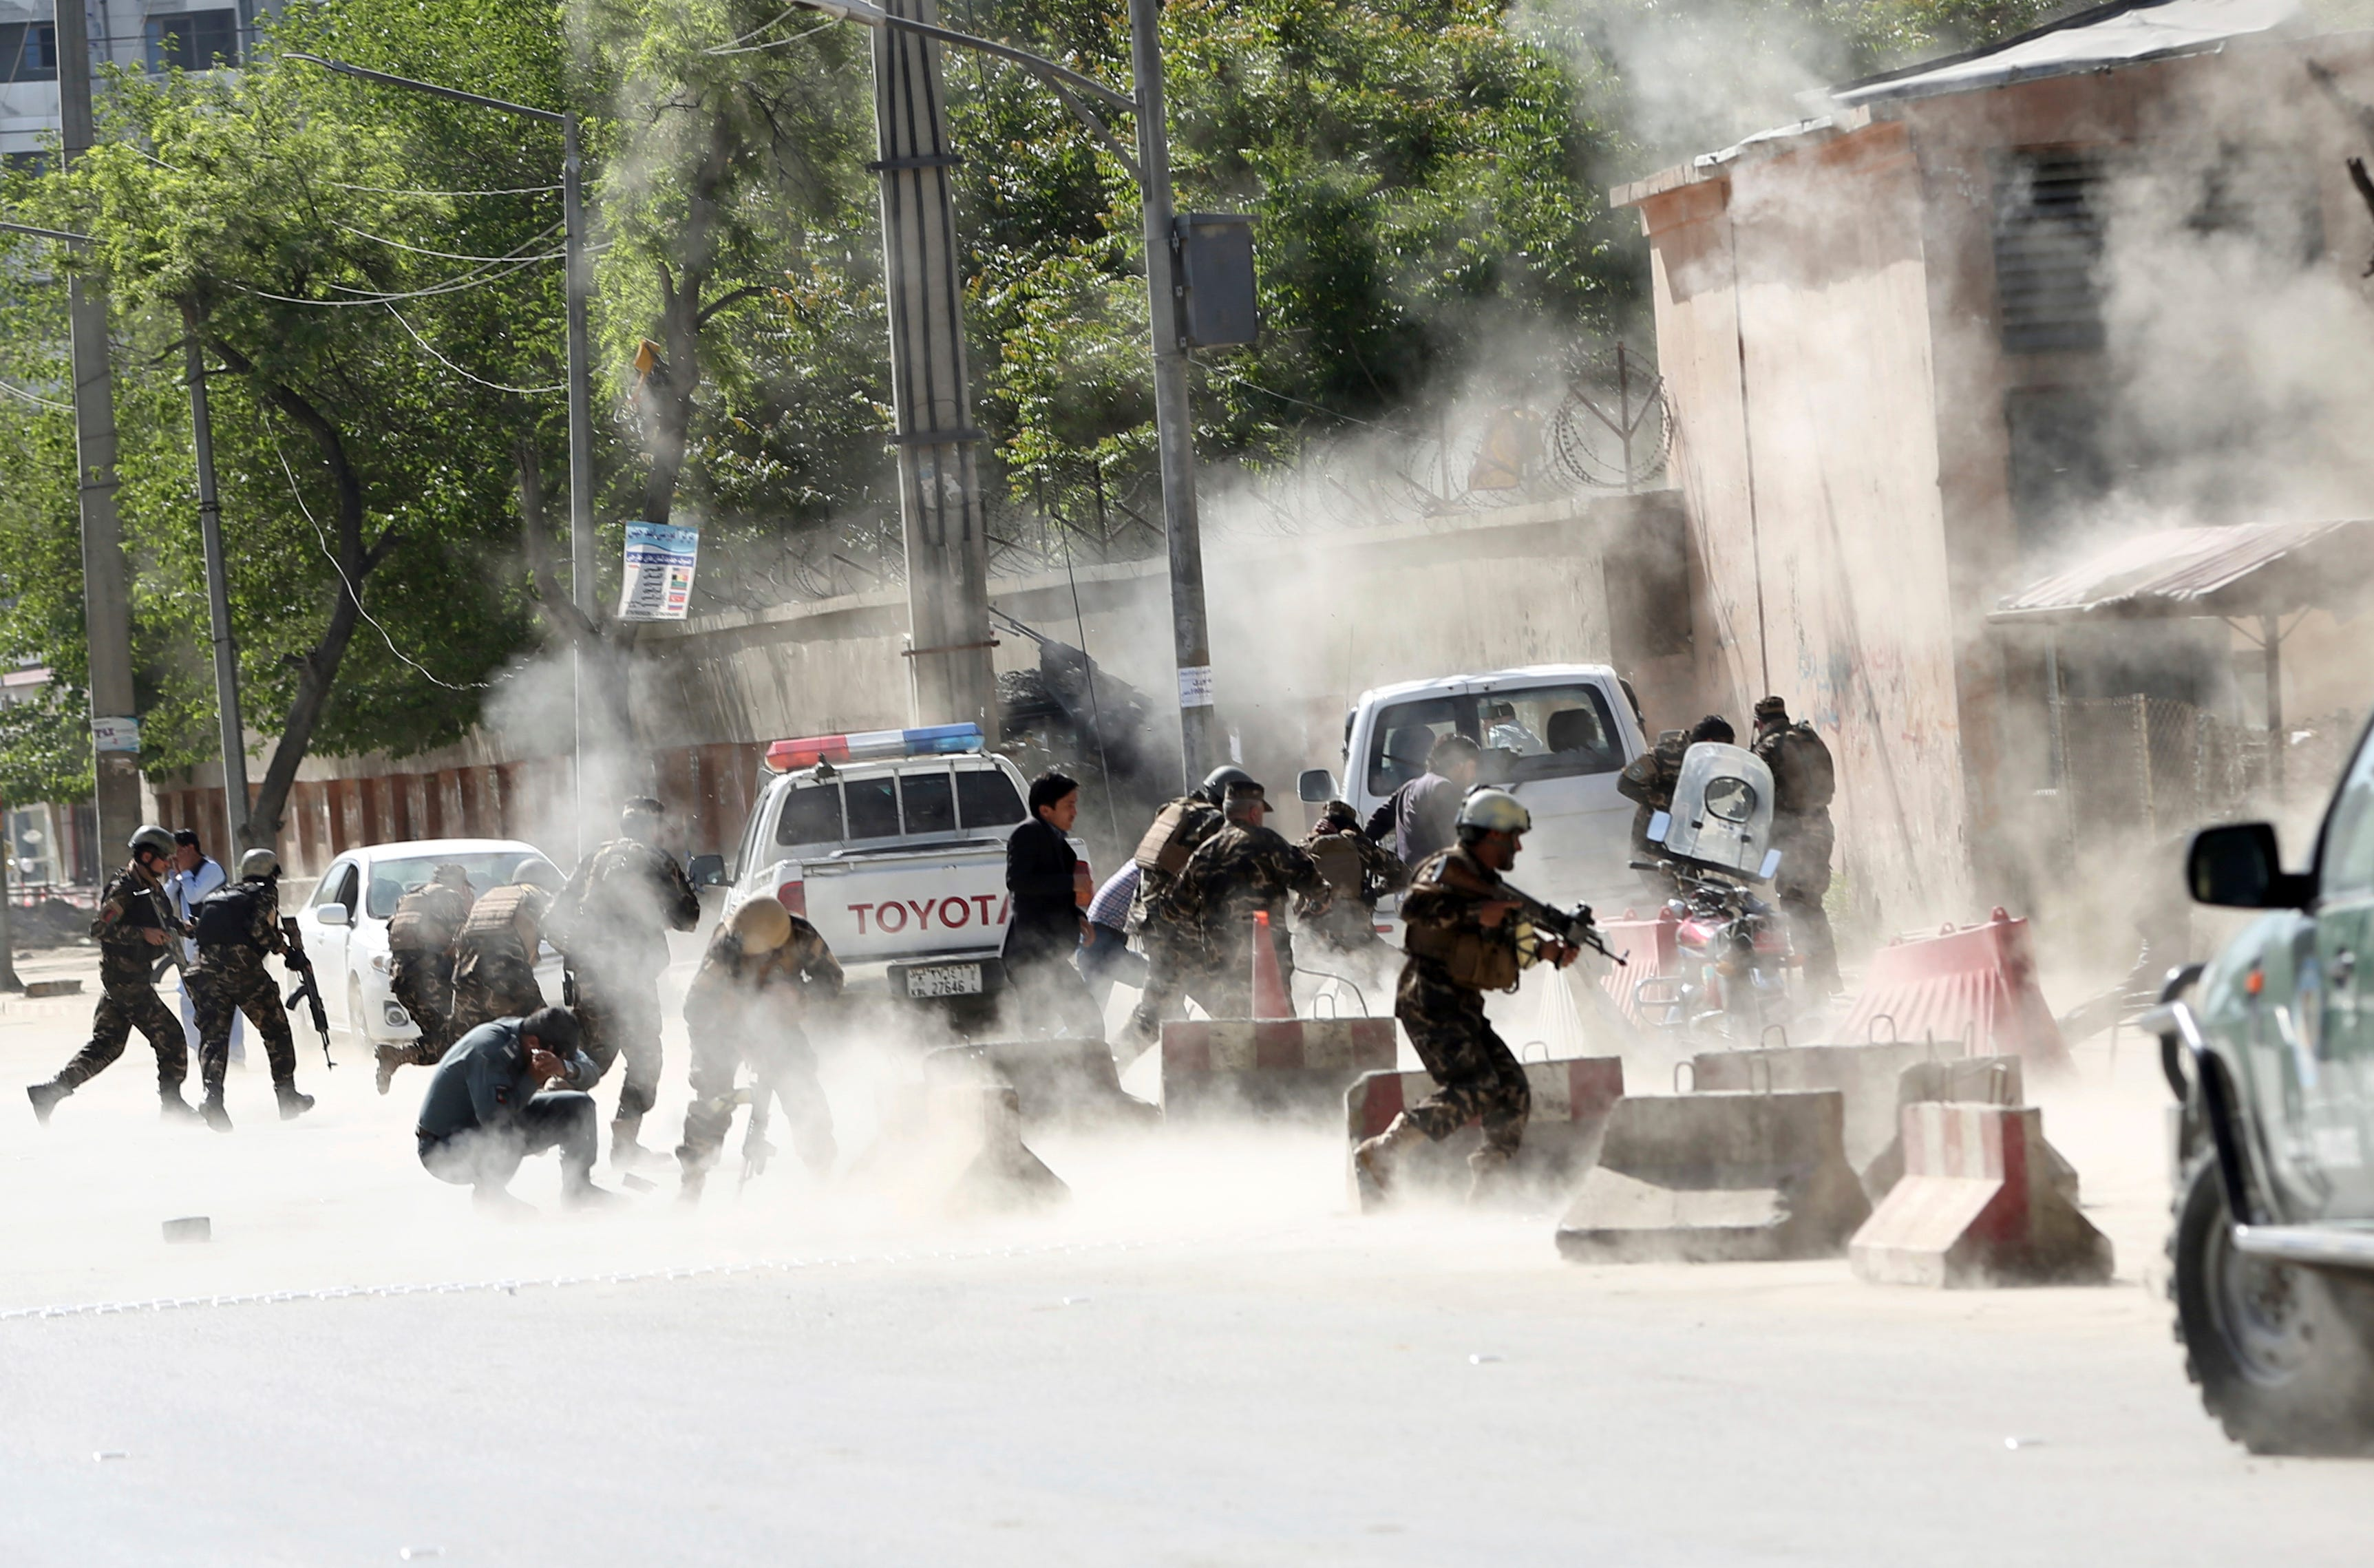 Security forces run from the site of a suicide attack after the second bombing in Kabul, Afghanistan, April 30, 2018. A coordinated double suicide bombing hit central Kabul on Monday morning,